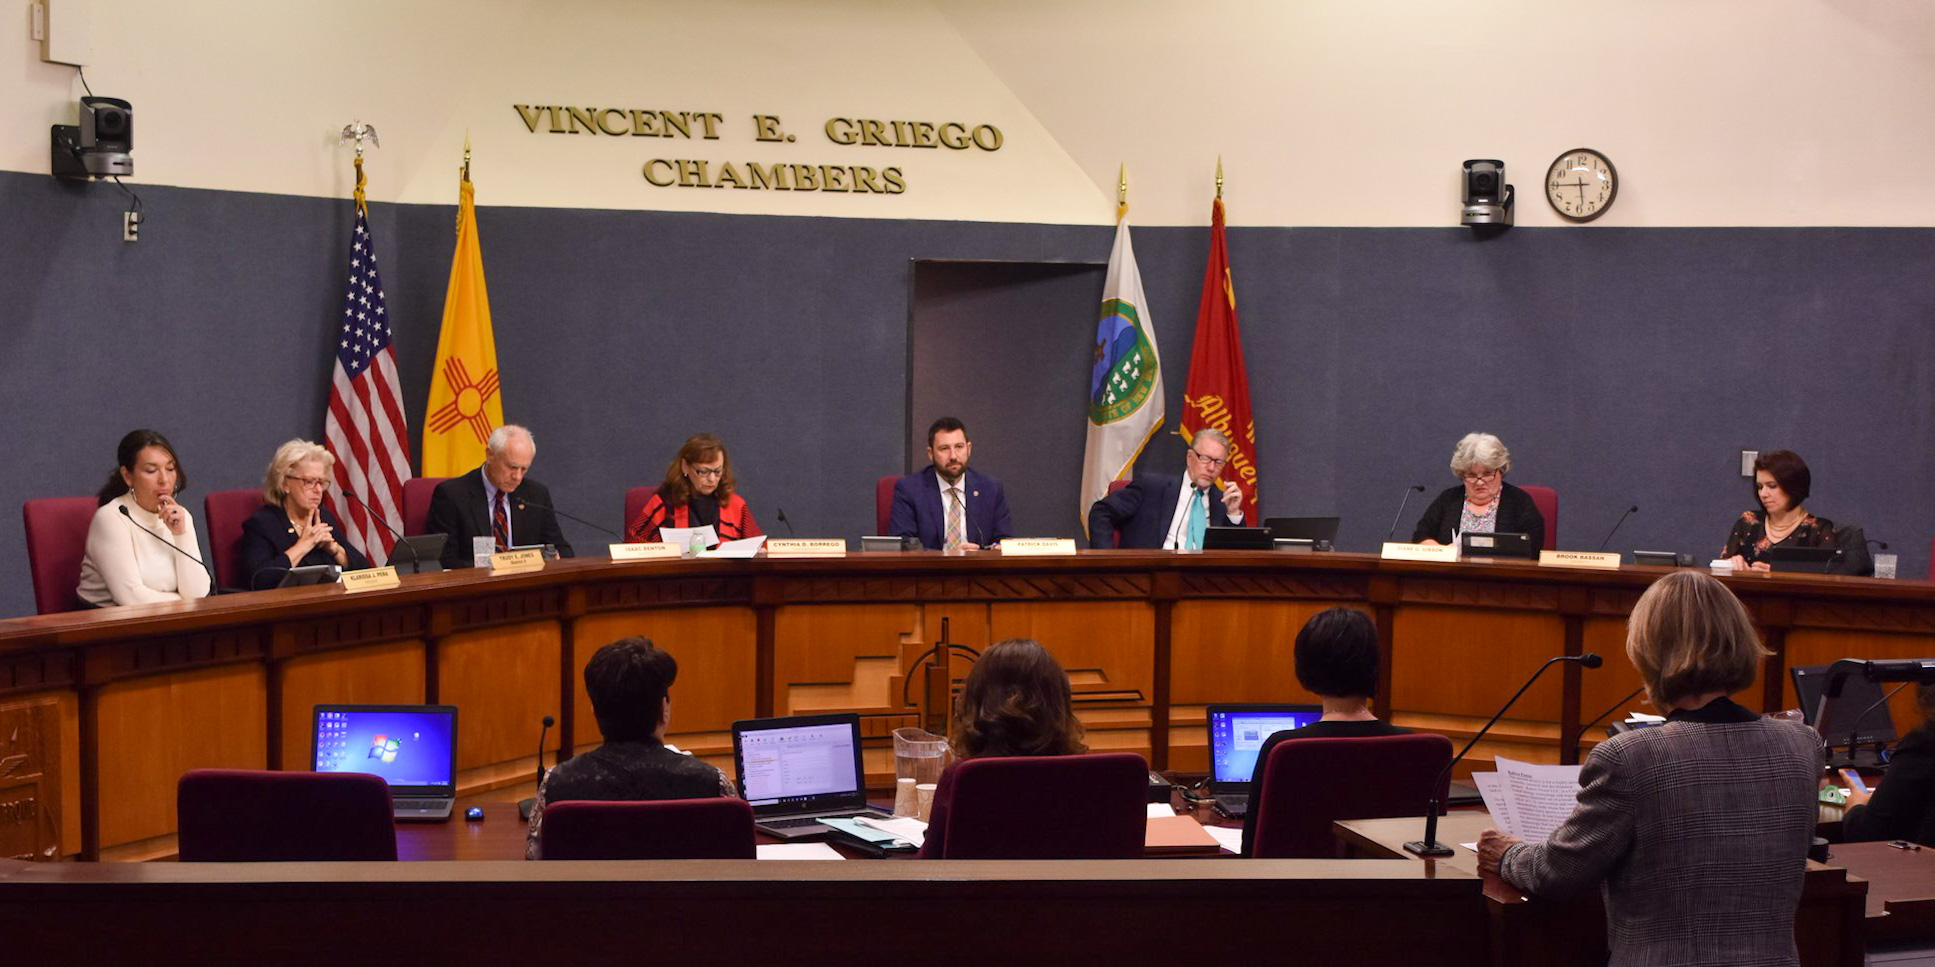 City Council Chambers with person speaking